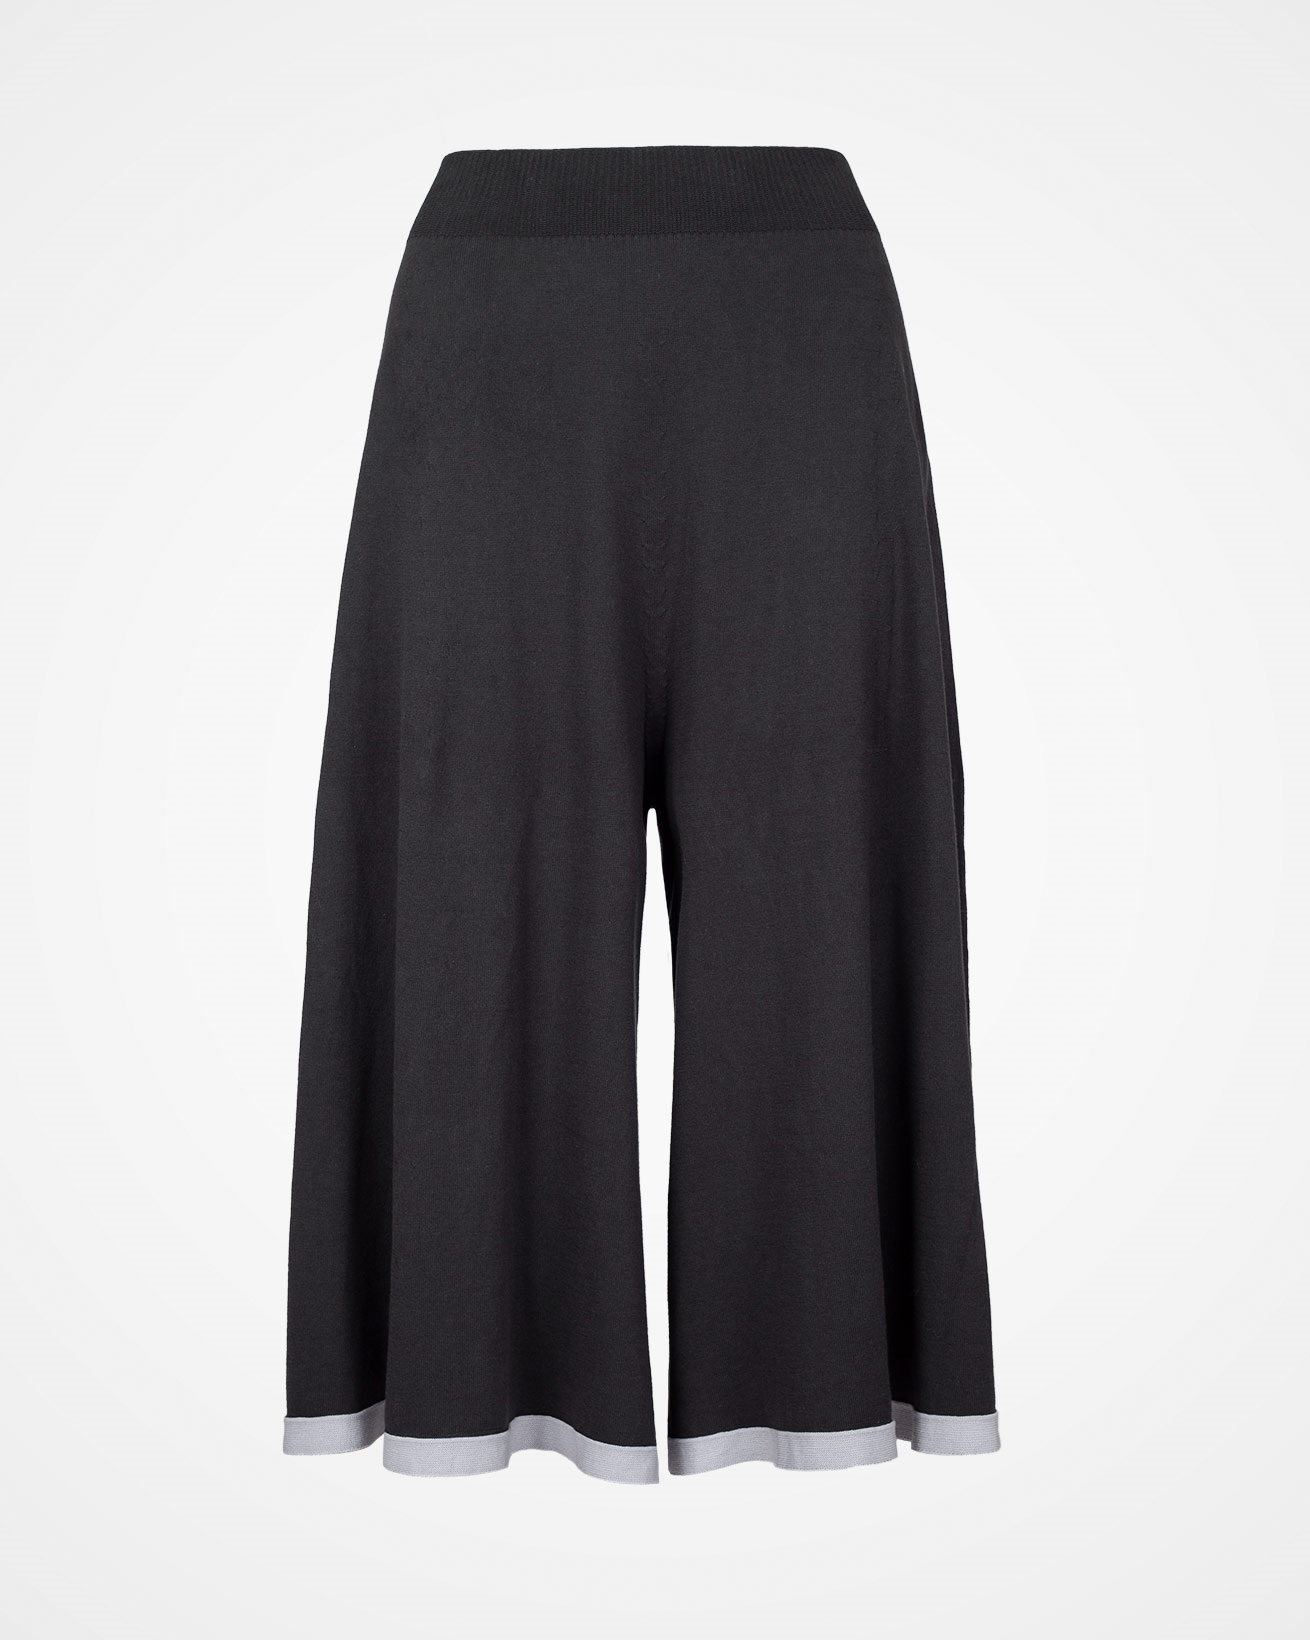 7672_eco-cotton-culottes_charcoal-tipped_front.jpg